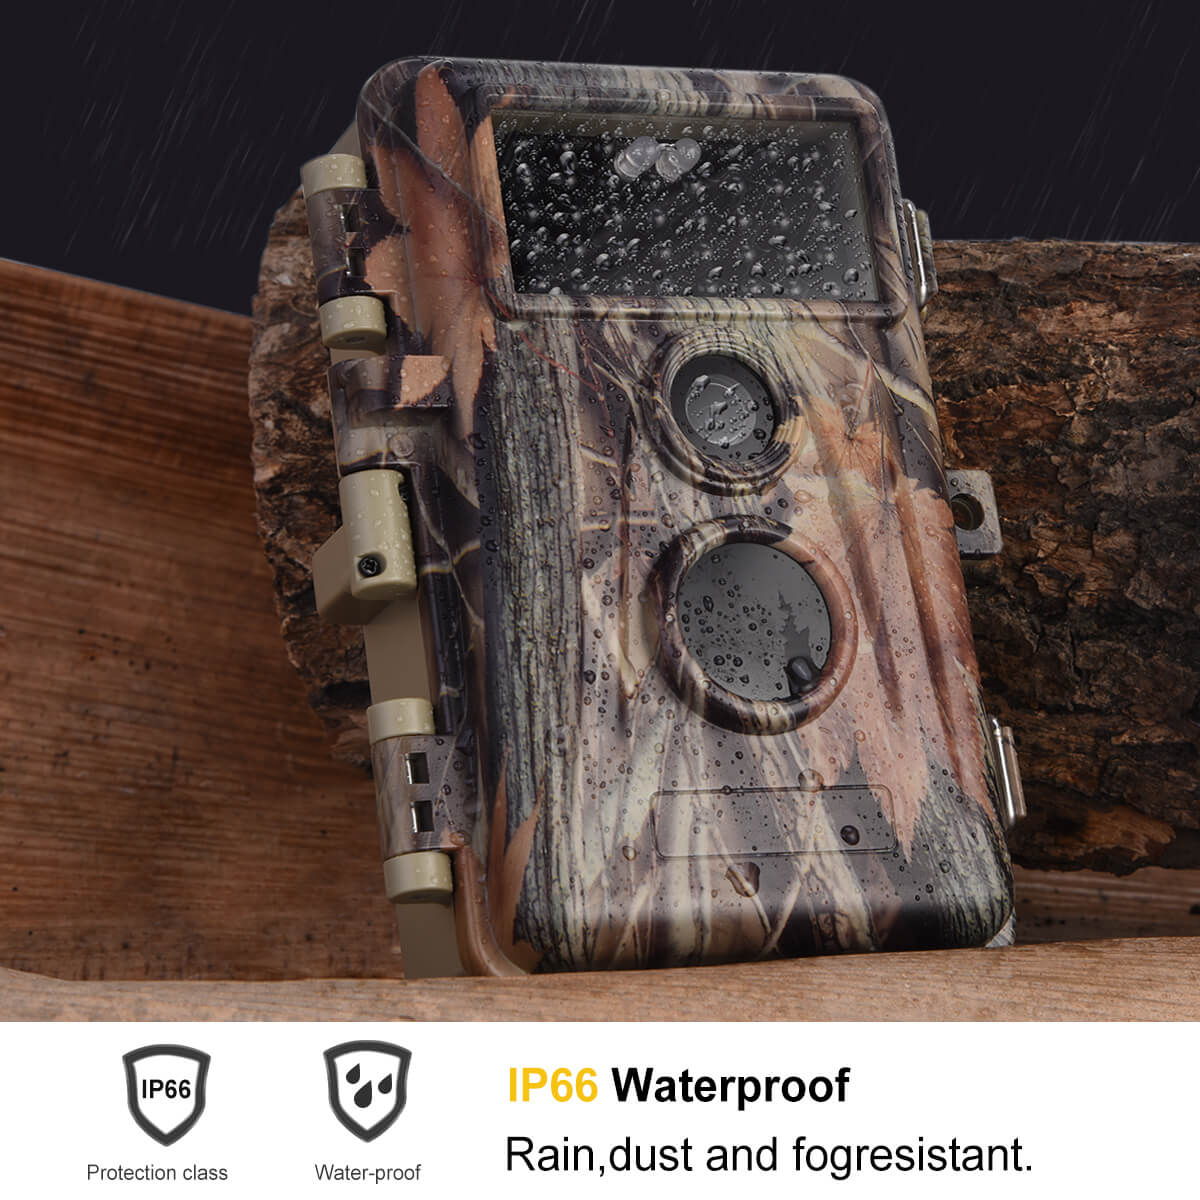 8-Pack Trail Wildlife Hunting & Field Farm Tree Cameras 20MP HD H.264 1080P MP4 Video 0.5S Trigger Motion Activated IP66 Waterproof with LCD